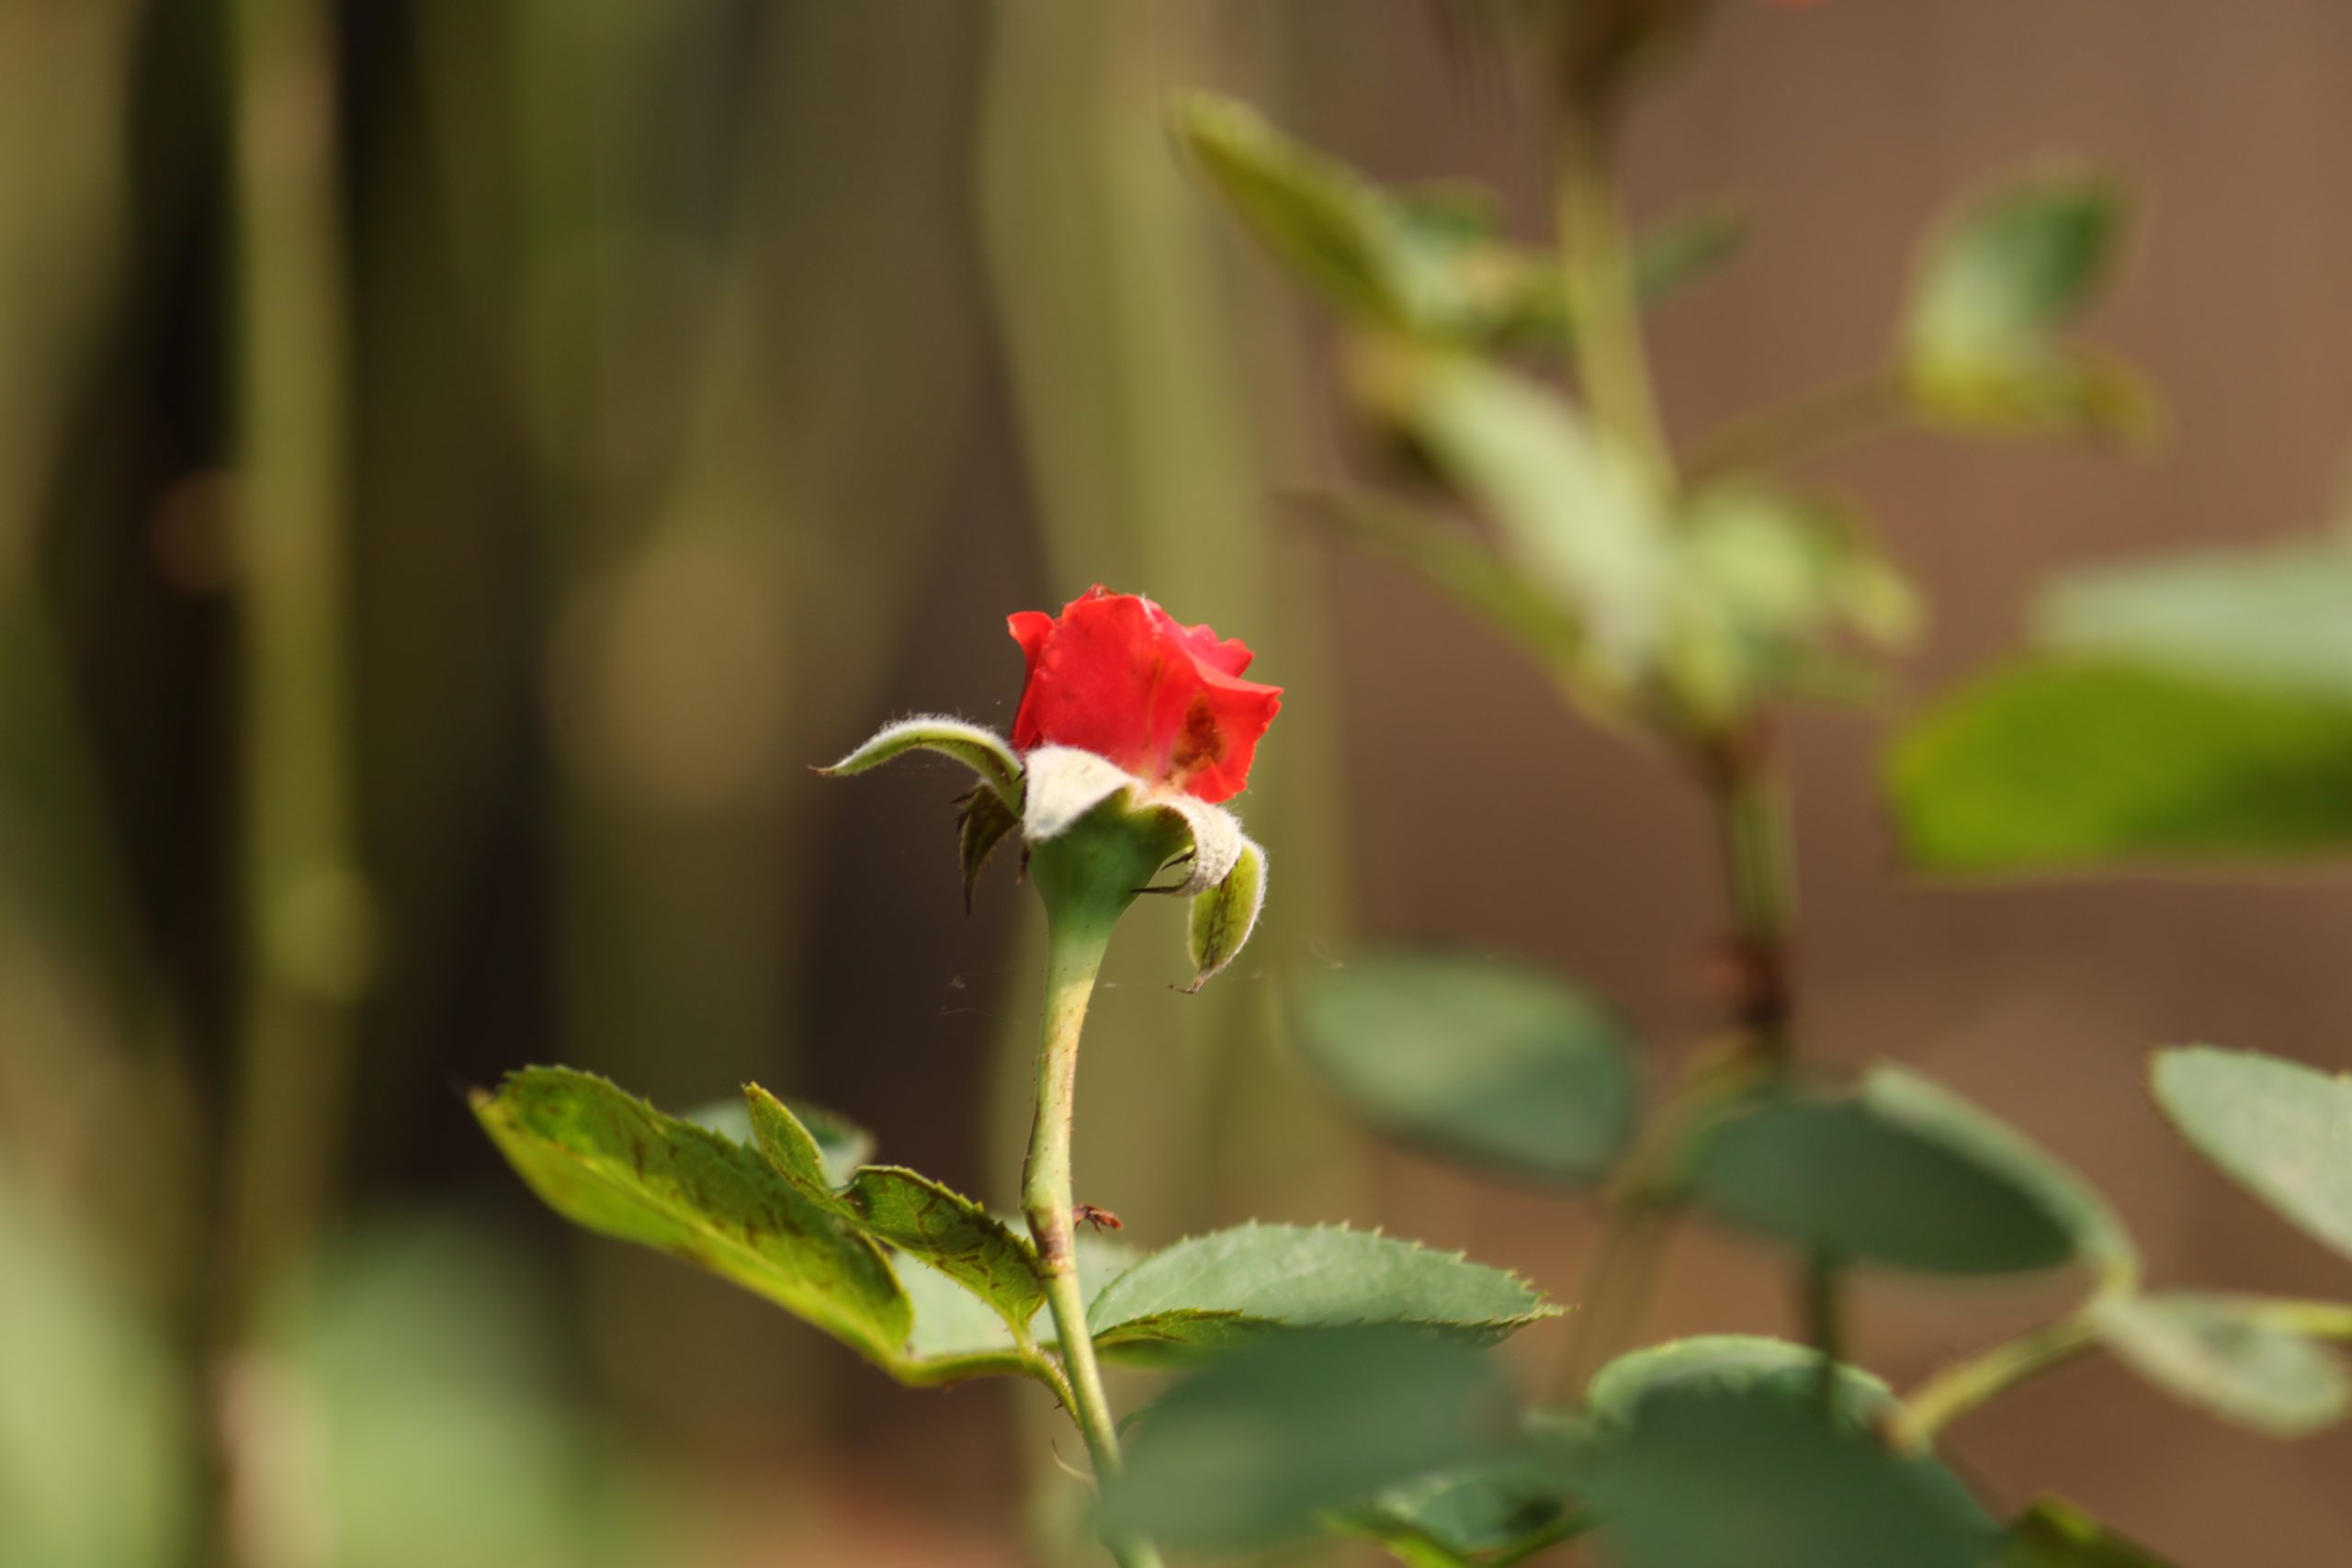 A red flower in a garden